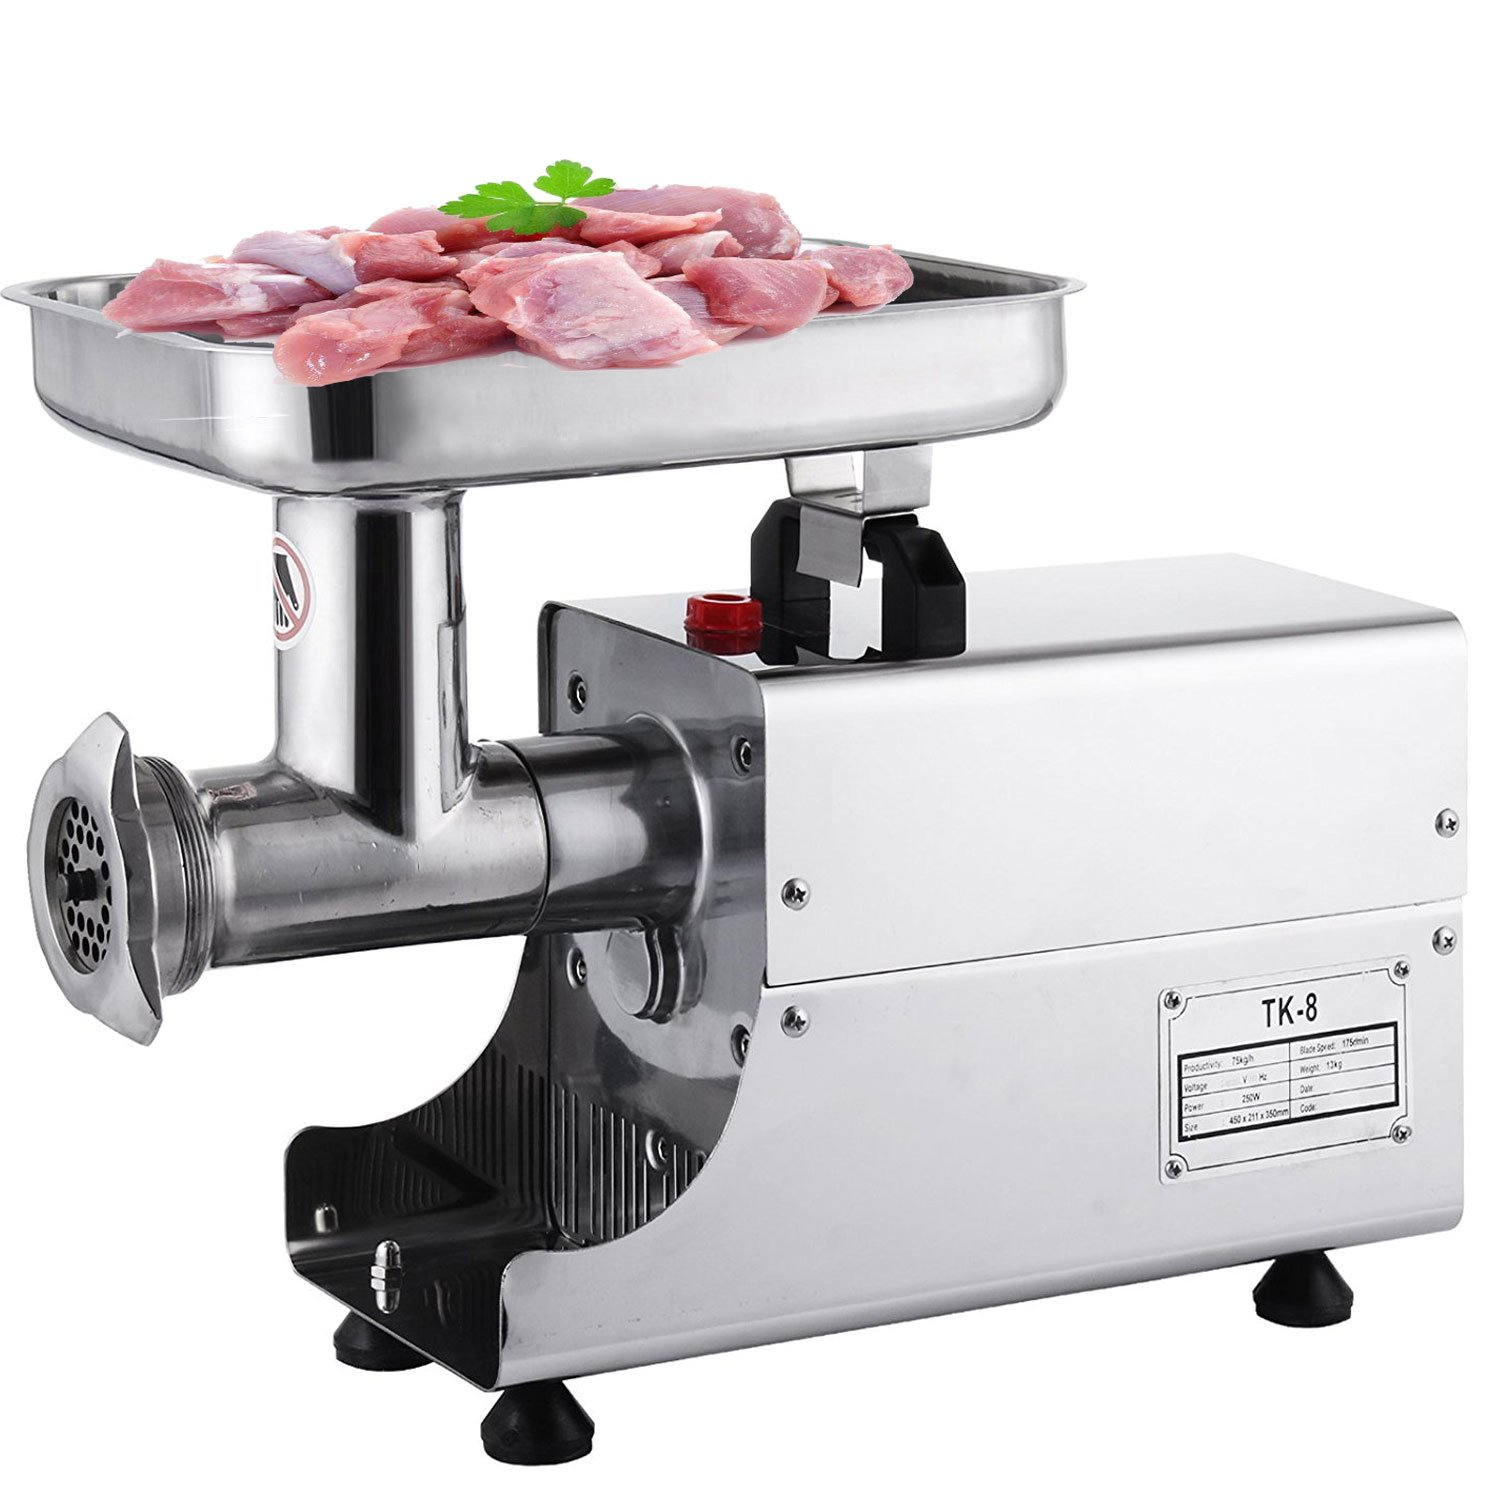 Happybuy Meat Grinder Electric 0.33HP/250W 176Lbs/H Commercial Sausage Maker Stainless Steel for Restaurant Butcher Kitchen, 176LB by Happybuy